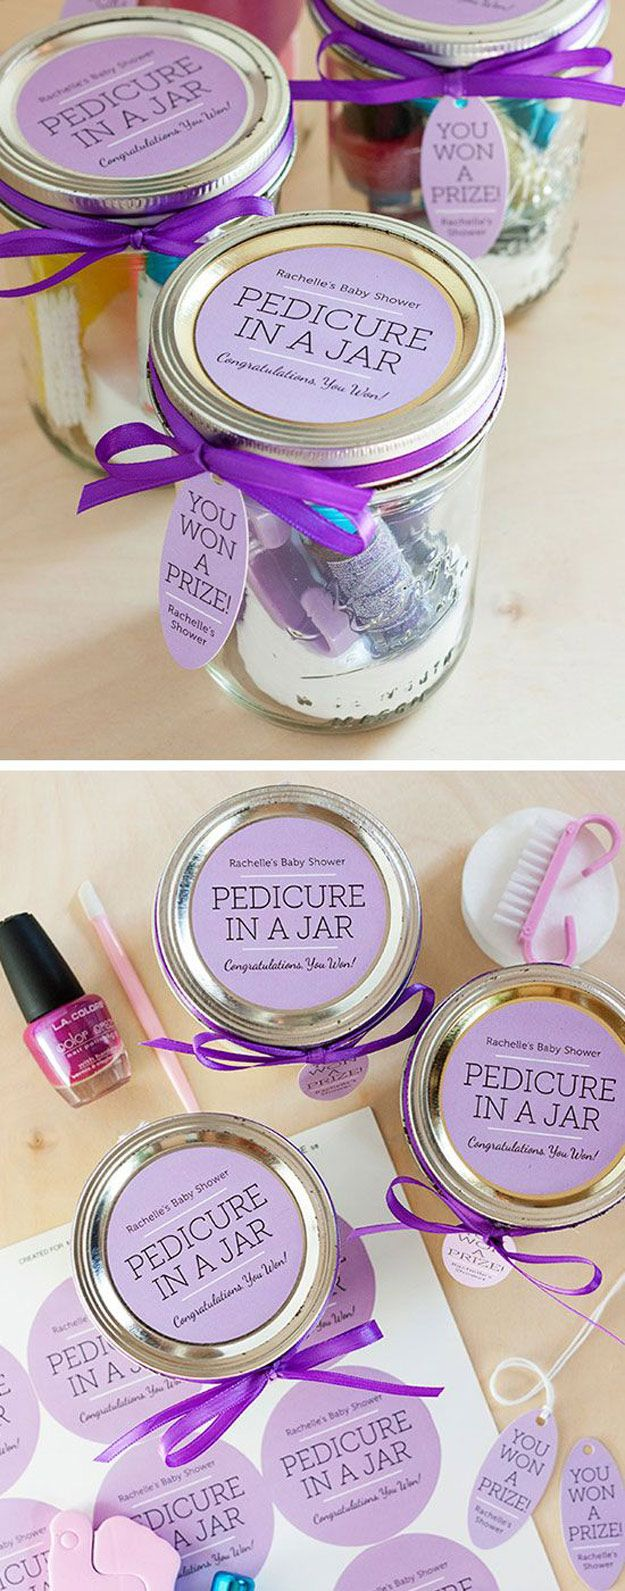 53 Gifts In A Jar Last minute diy mother's day gifts